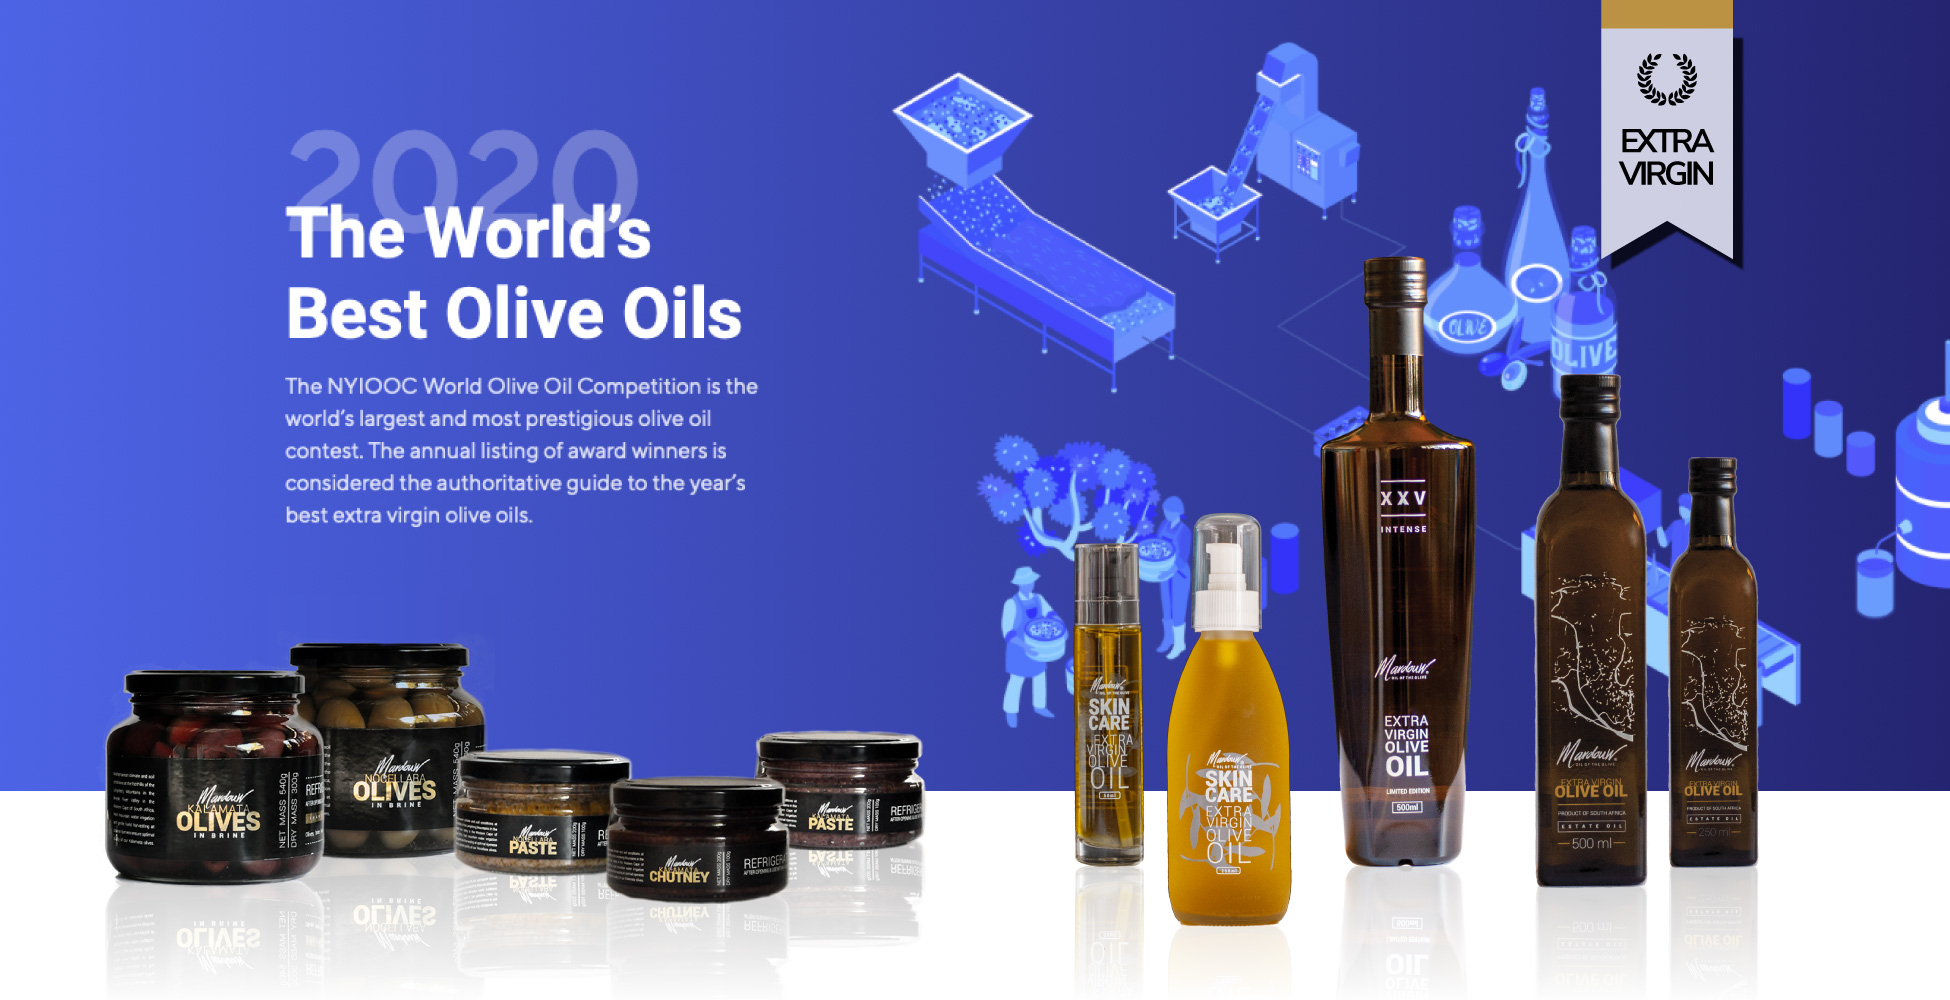 South Africa's Number 1 Extra Virgin Olive Oil